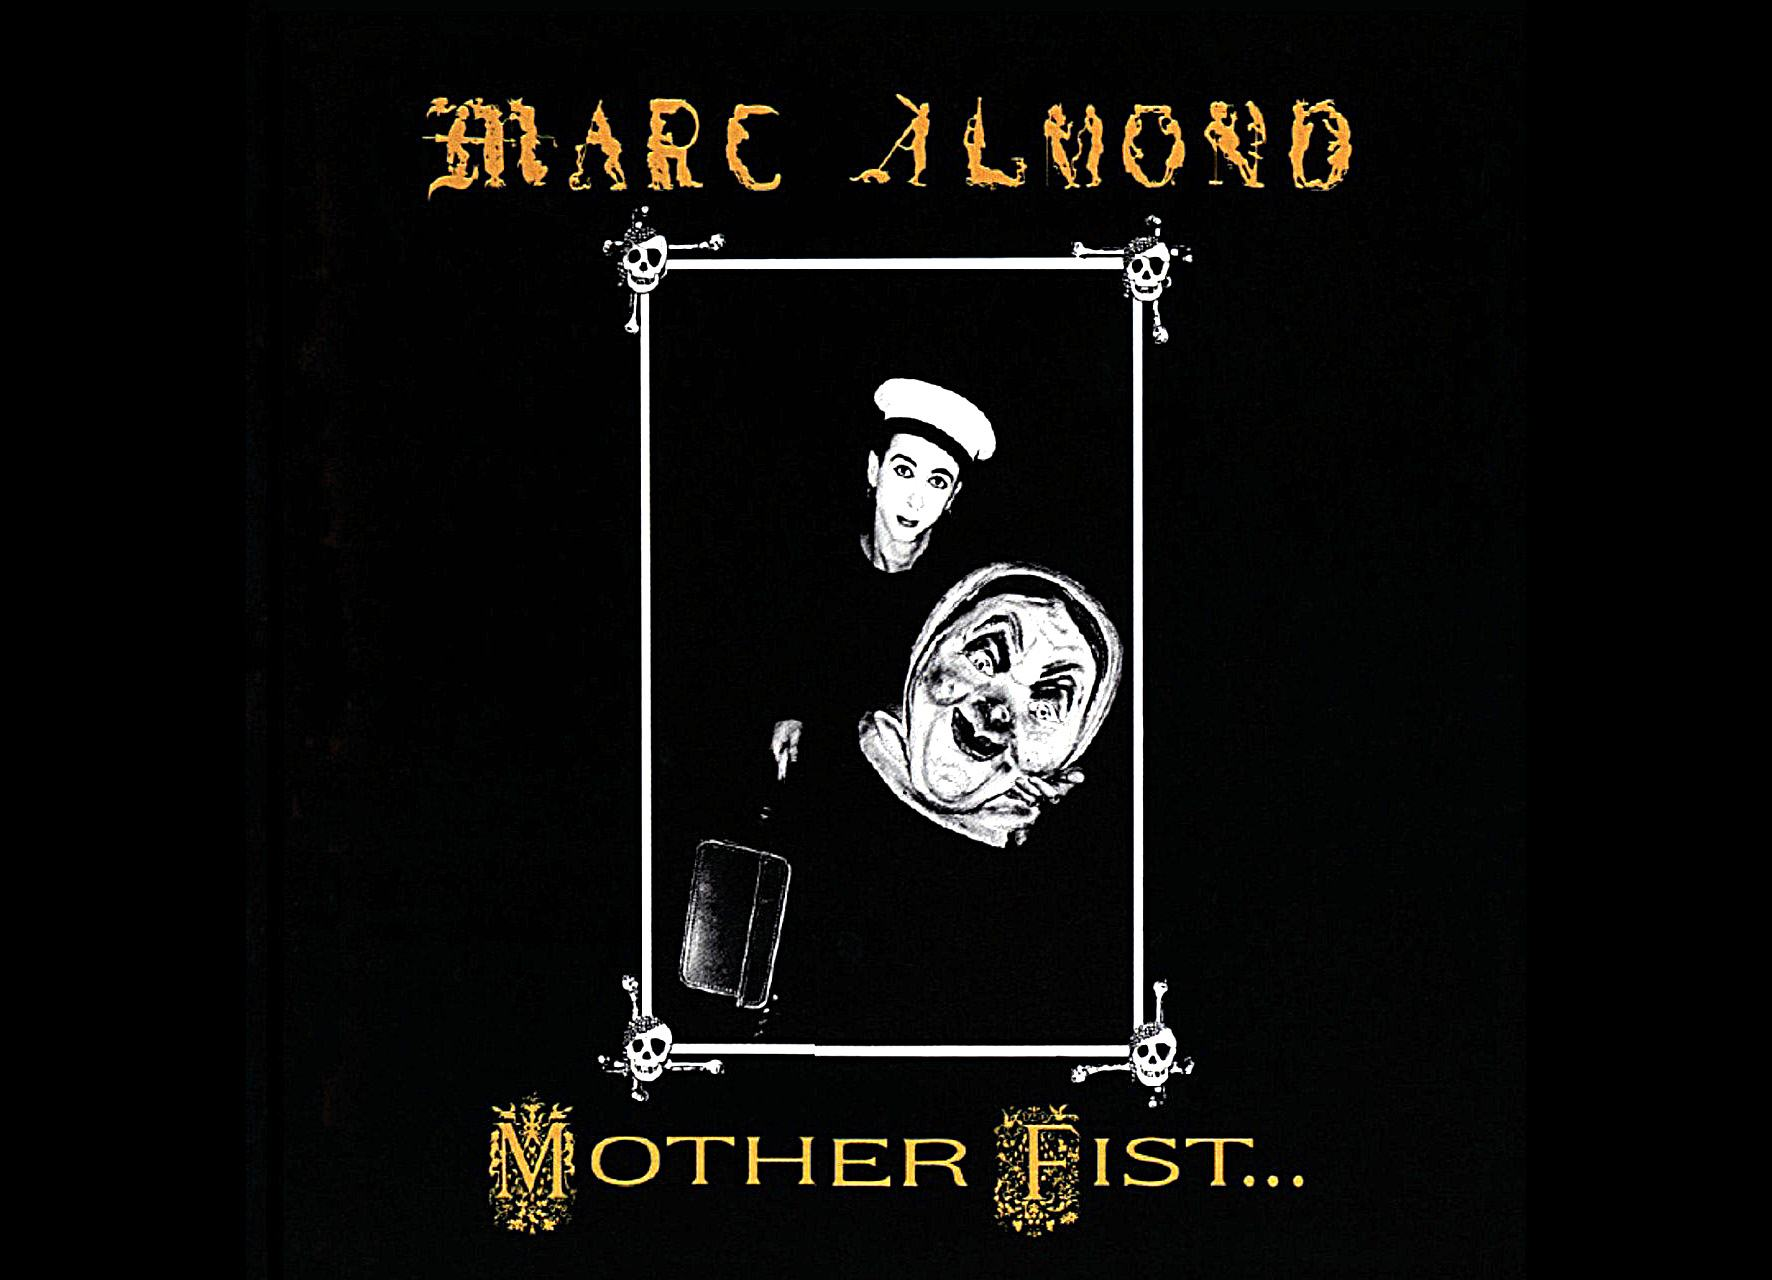 Marc Almond. Mother fist (1987). Inchiostri neri per i teatri dell'abbandono